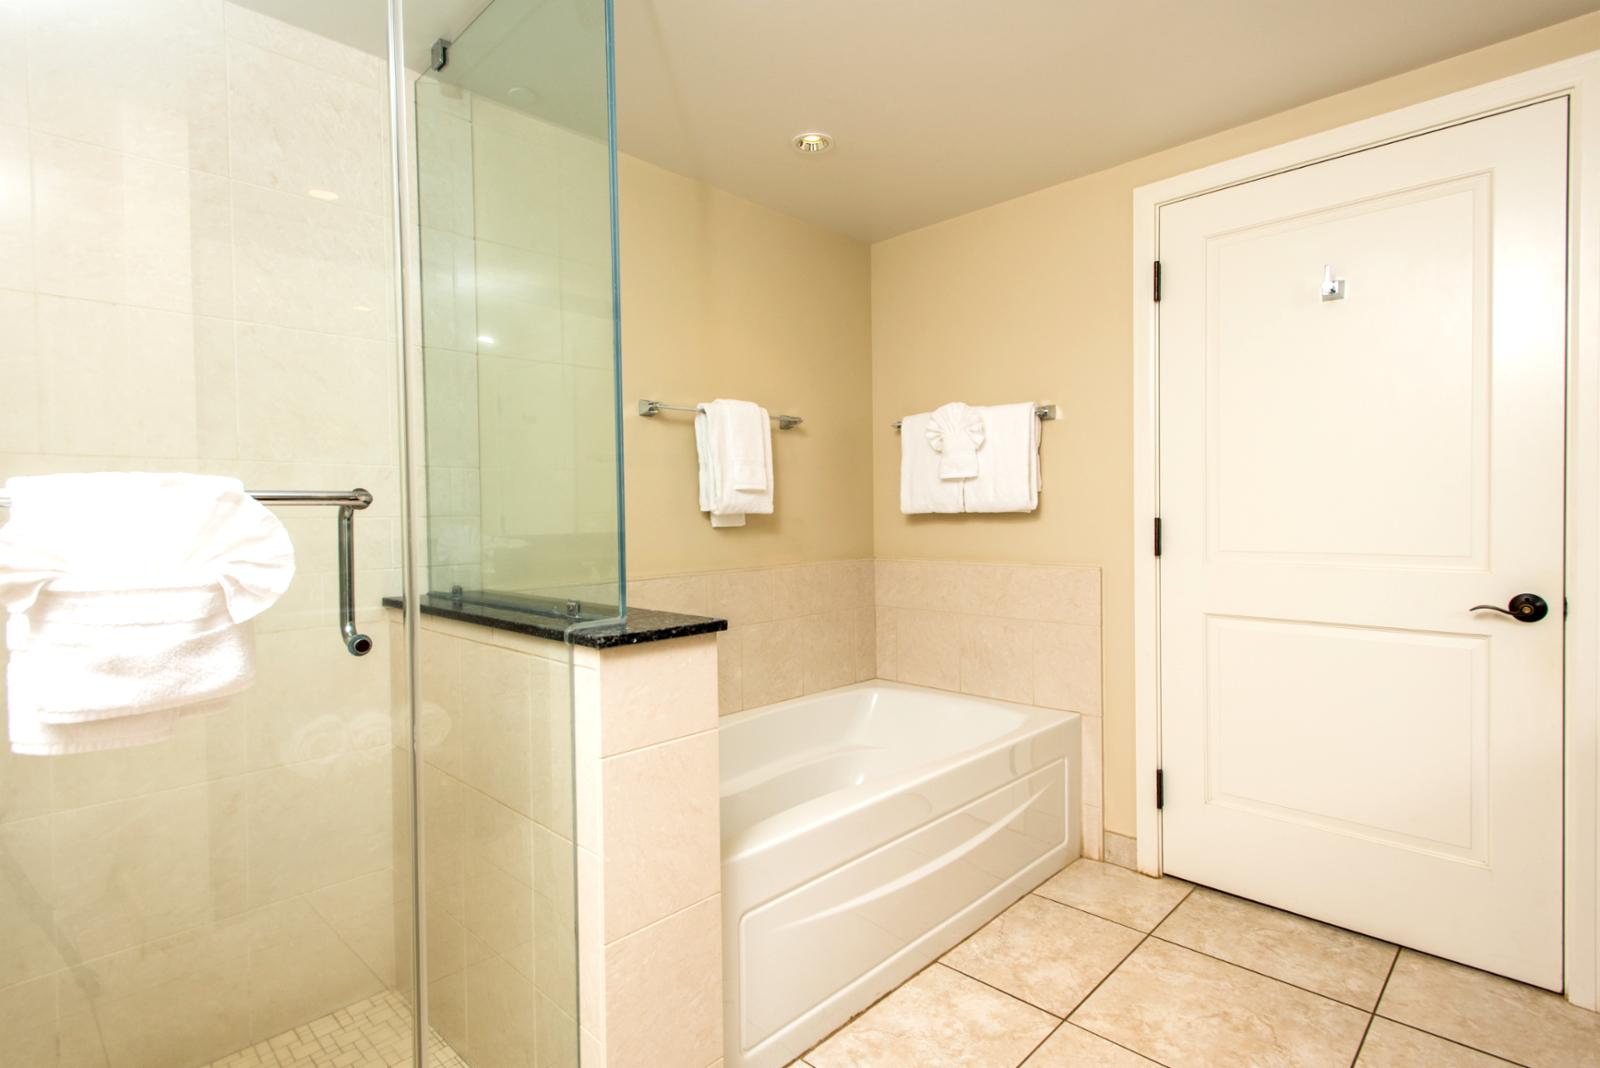 Reverse view showing floor to ceiling enclosed glass shower